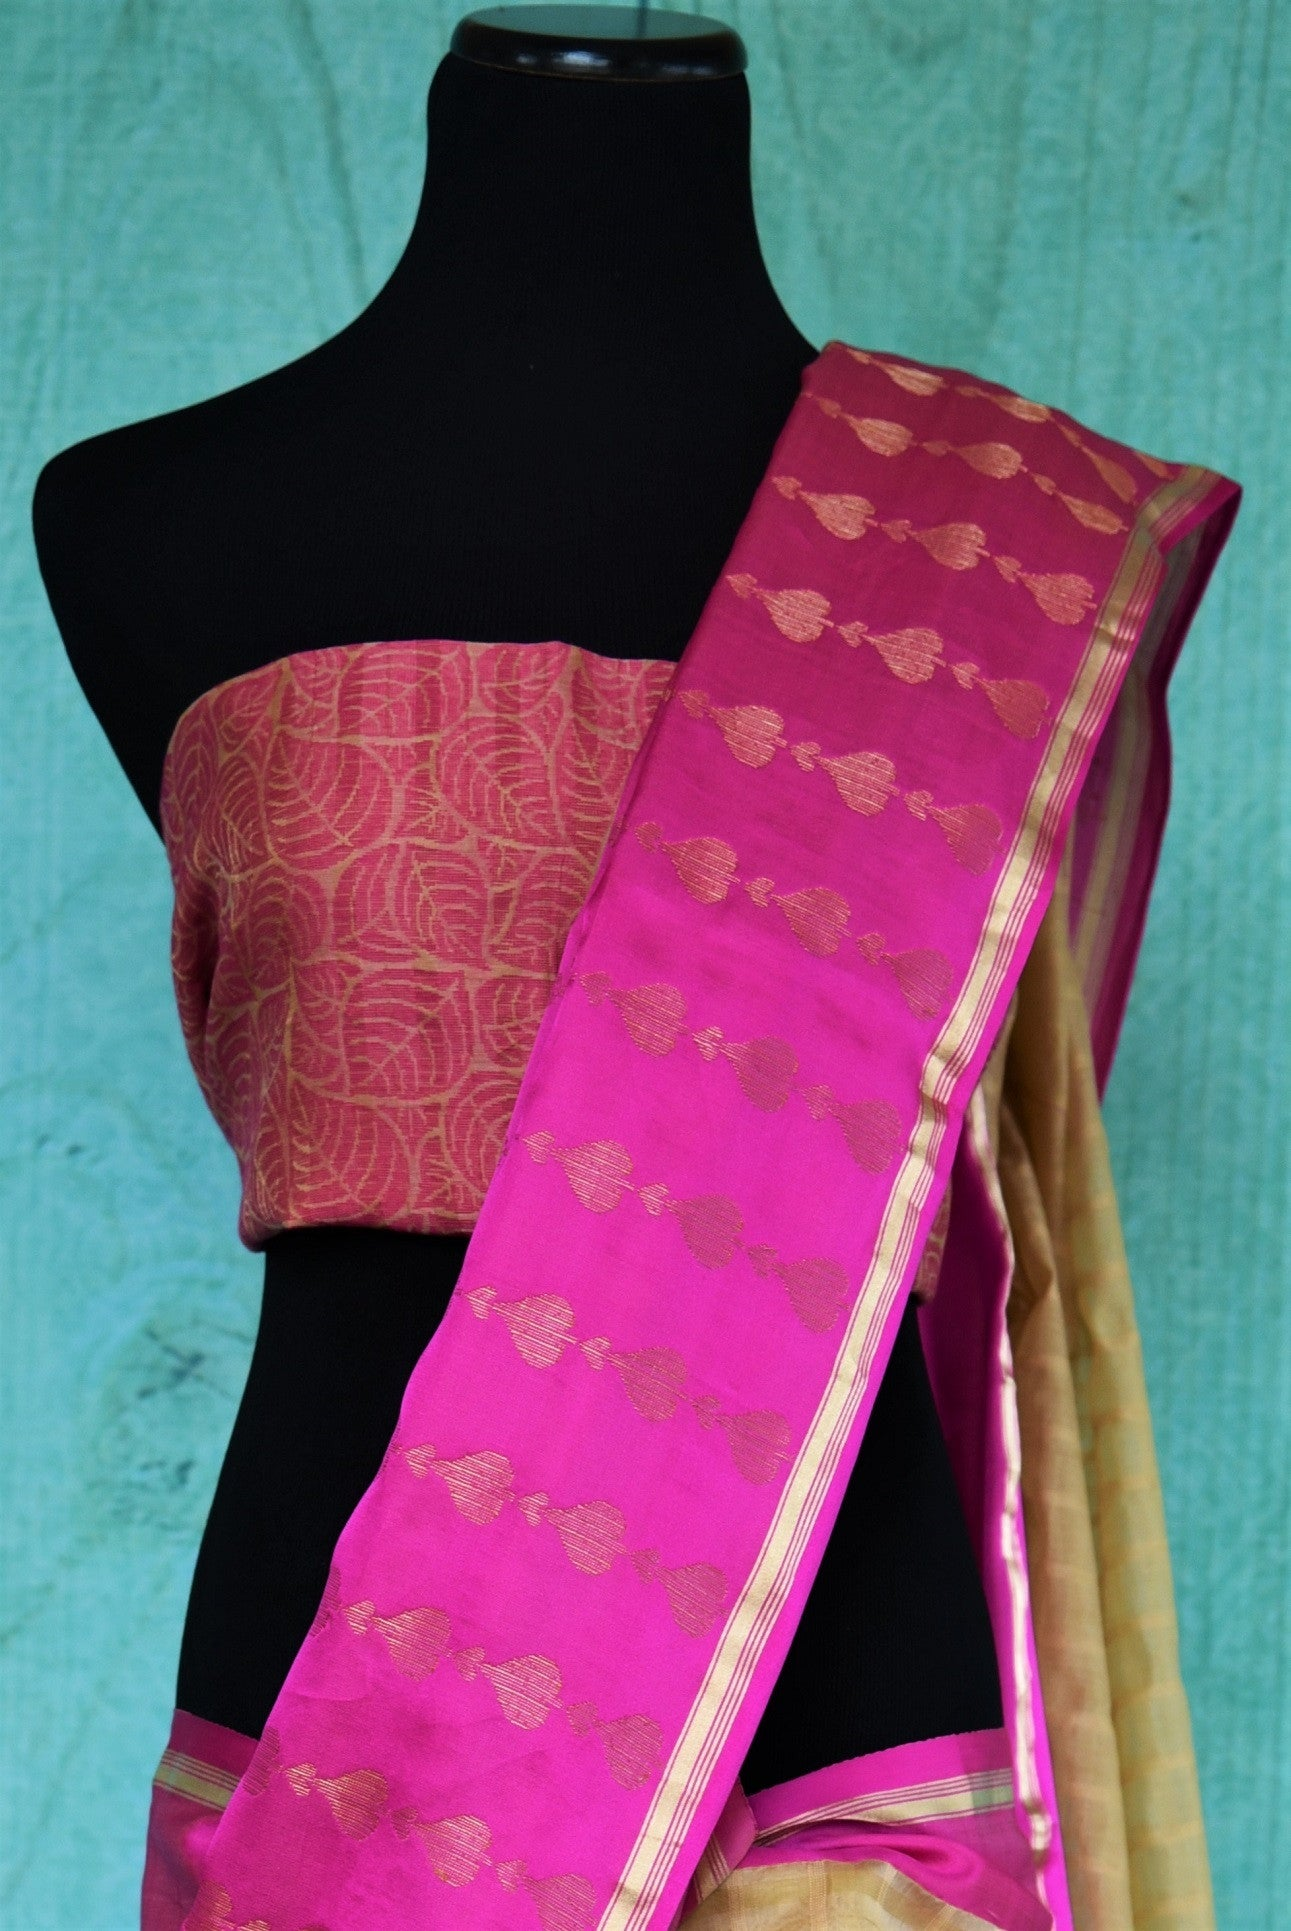 90B280 Shop this beige and pink muga Banarasi saree online at Pure Elegance. Topped with a vibrant pink border with golden pattern, it makes for the perfect festive wear Indian outfit.